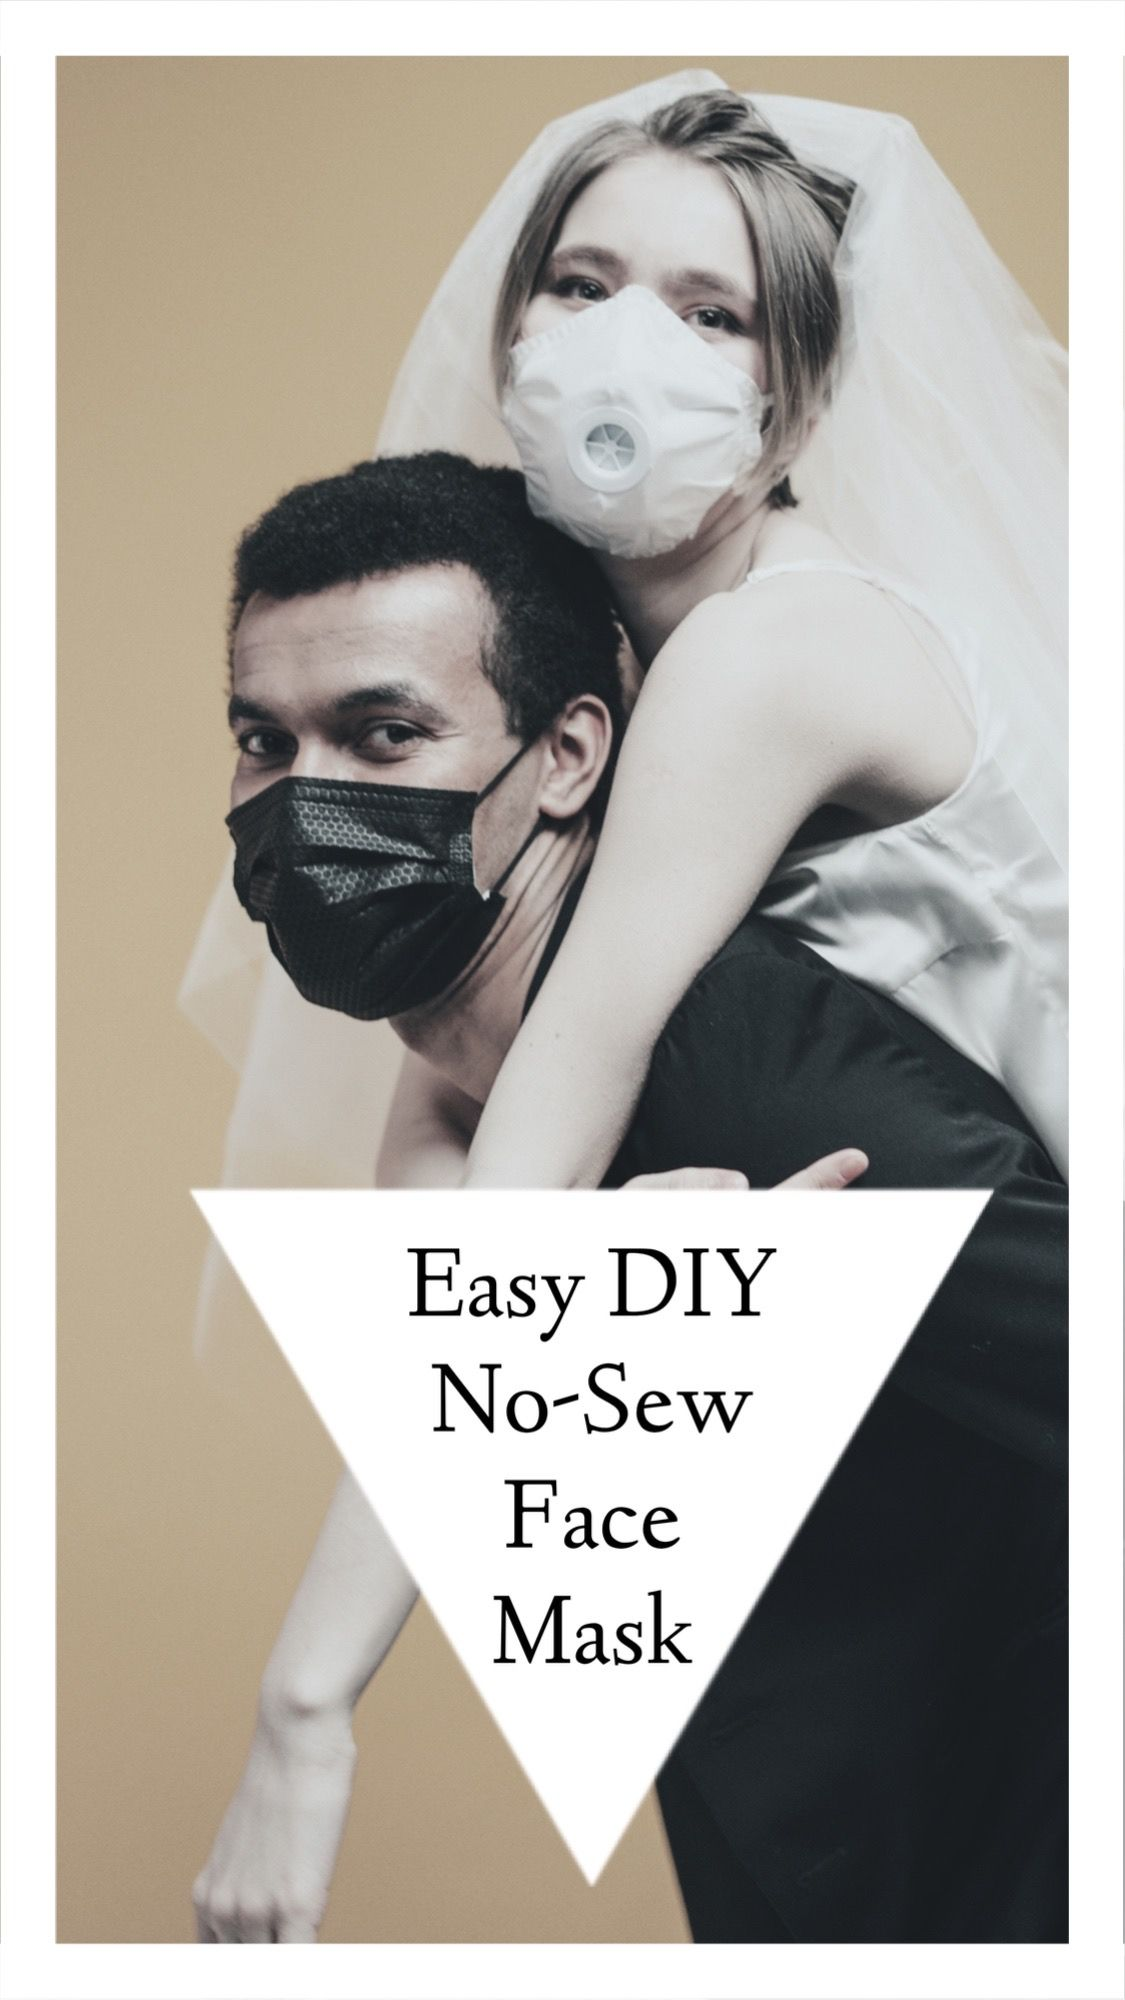 Easiest way to make a diy nosew medical face mask in 2020